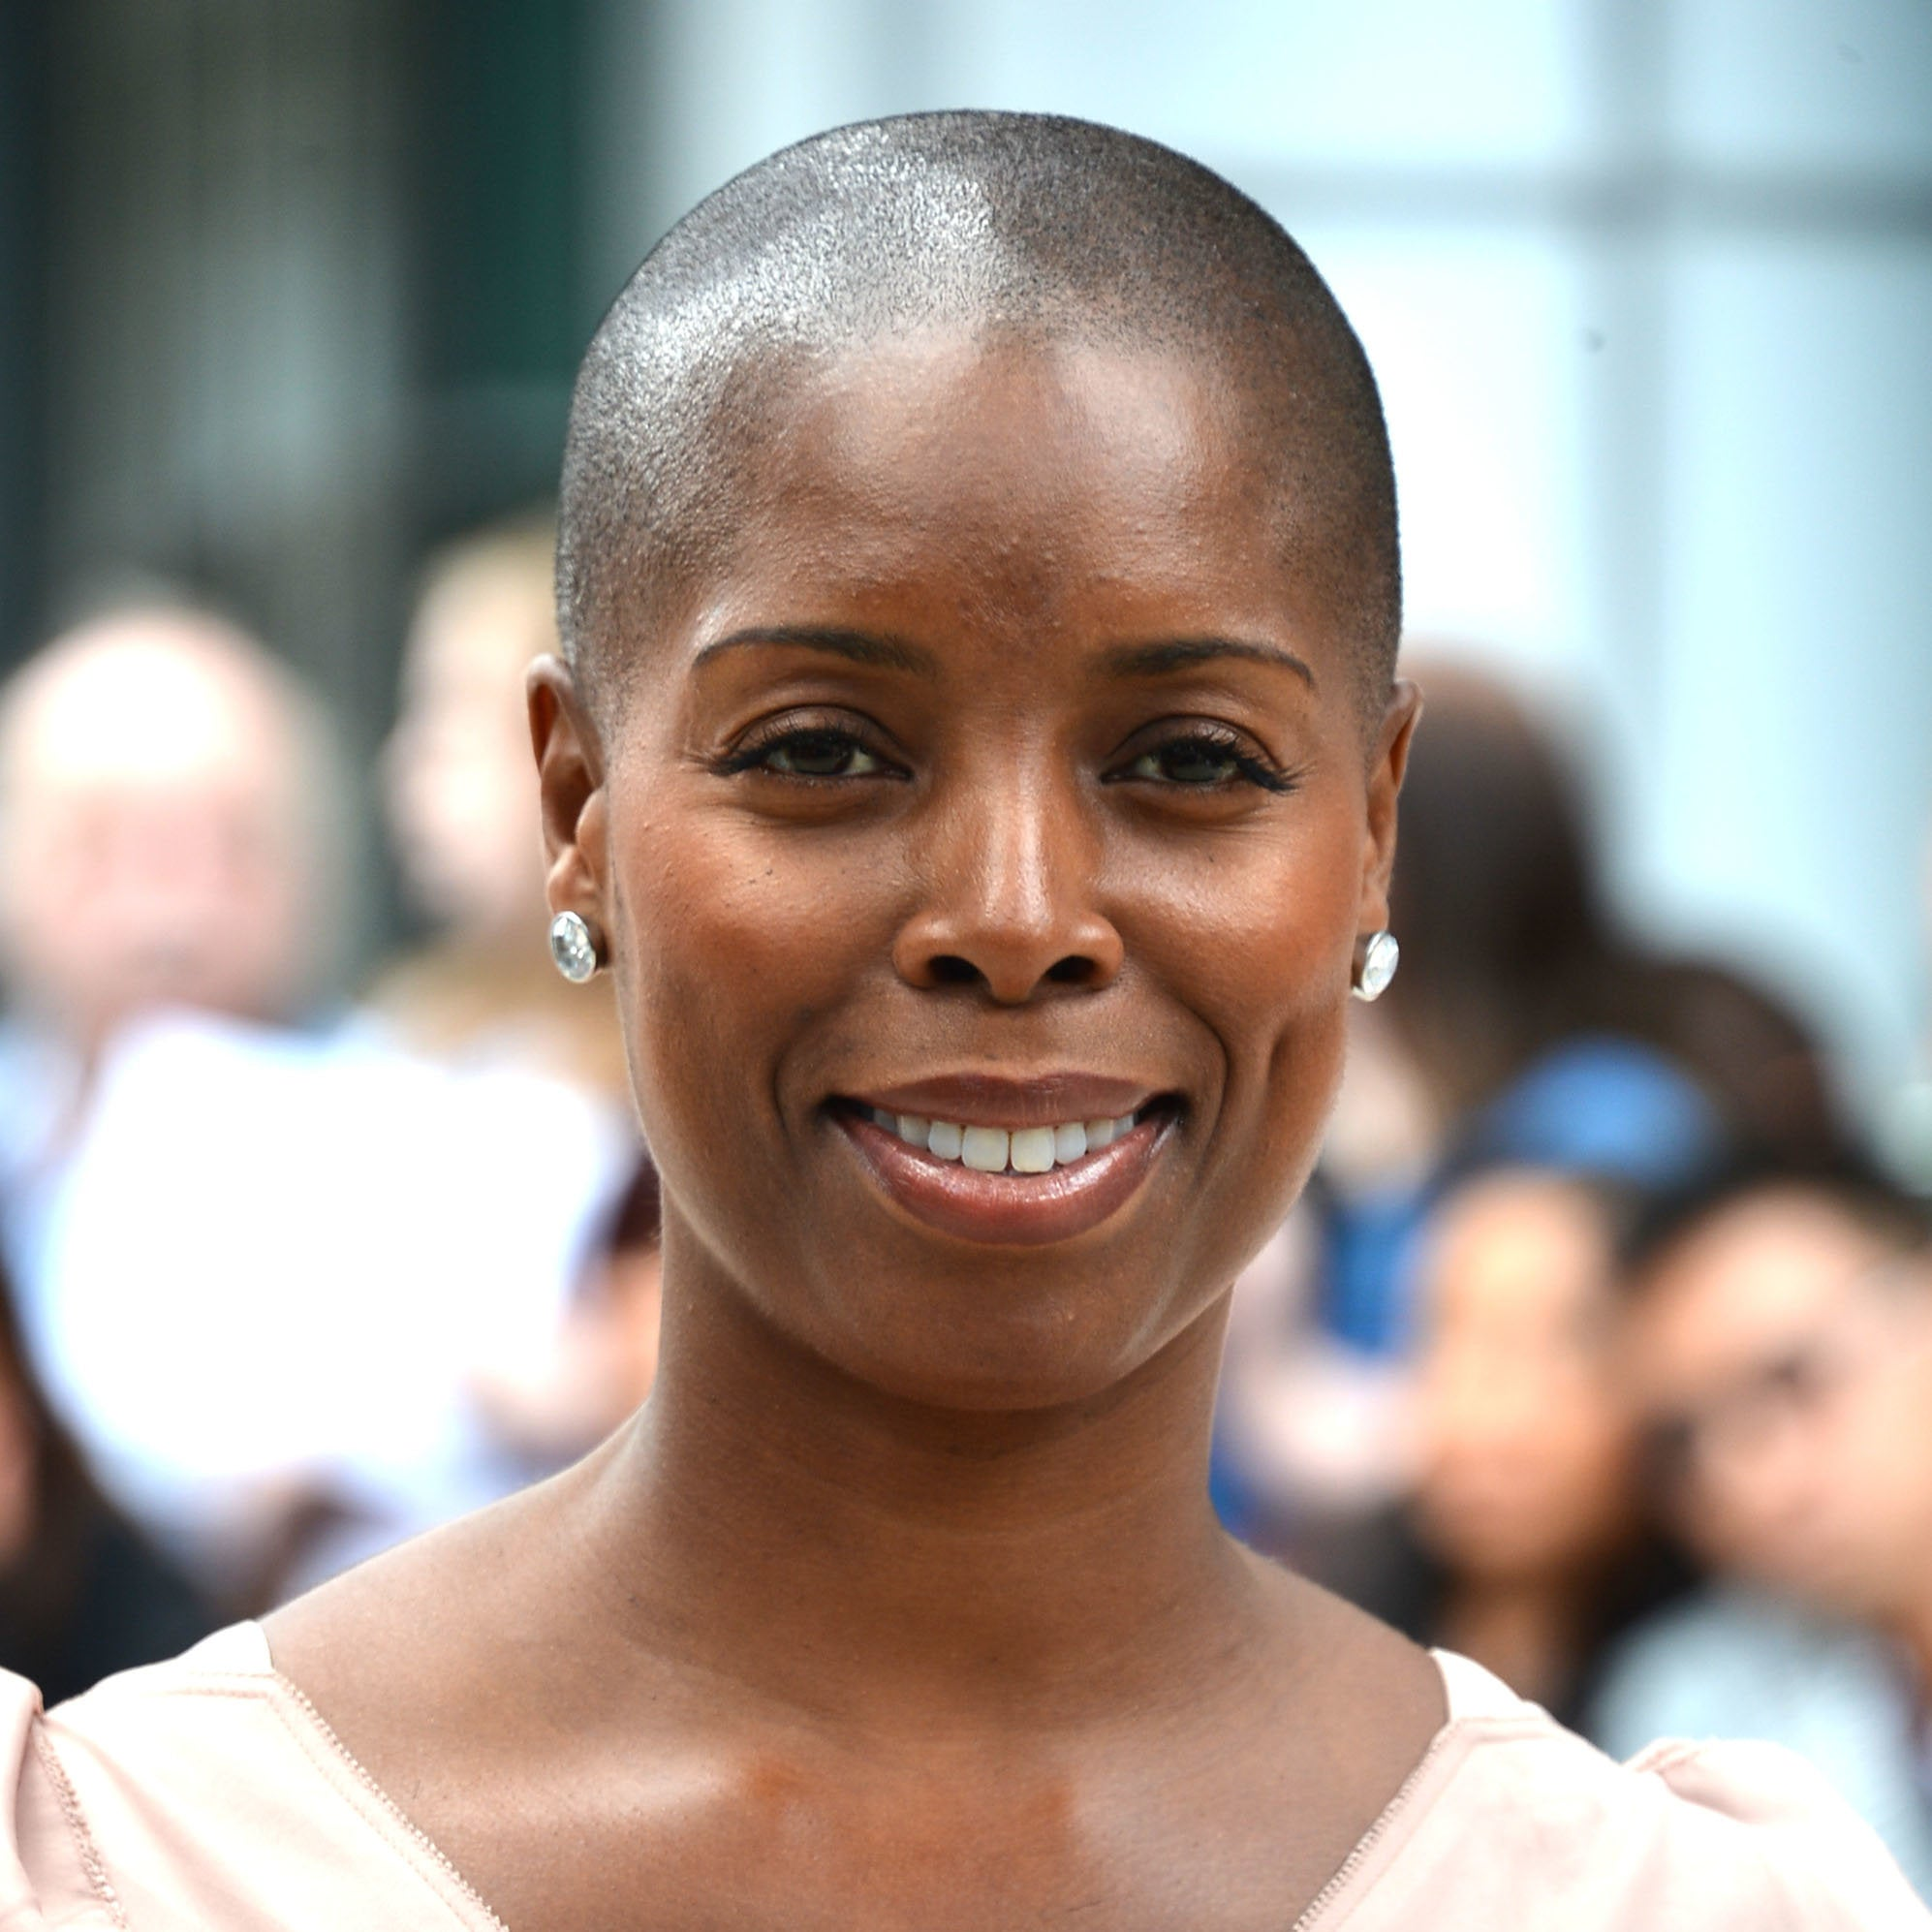 How Sidra Smith Went From An Obsession With Hair Extensions To A Bald Head